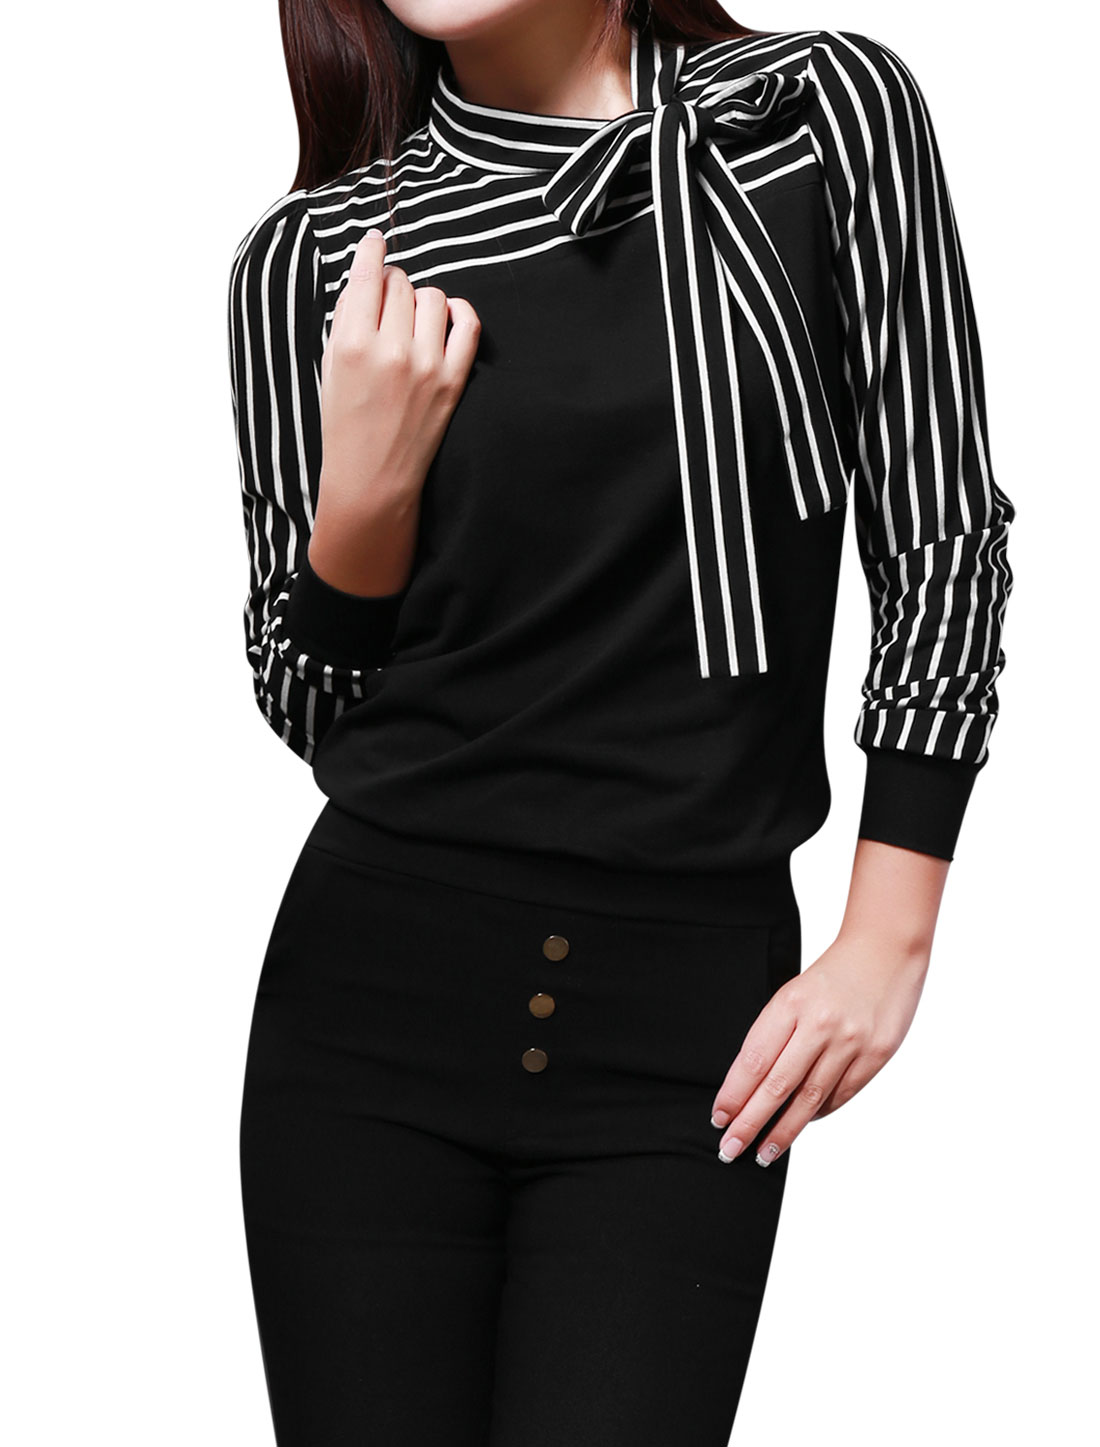 Self Tie Knot Stand Collar Striped Autumn Black Shirt XS for Women XS